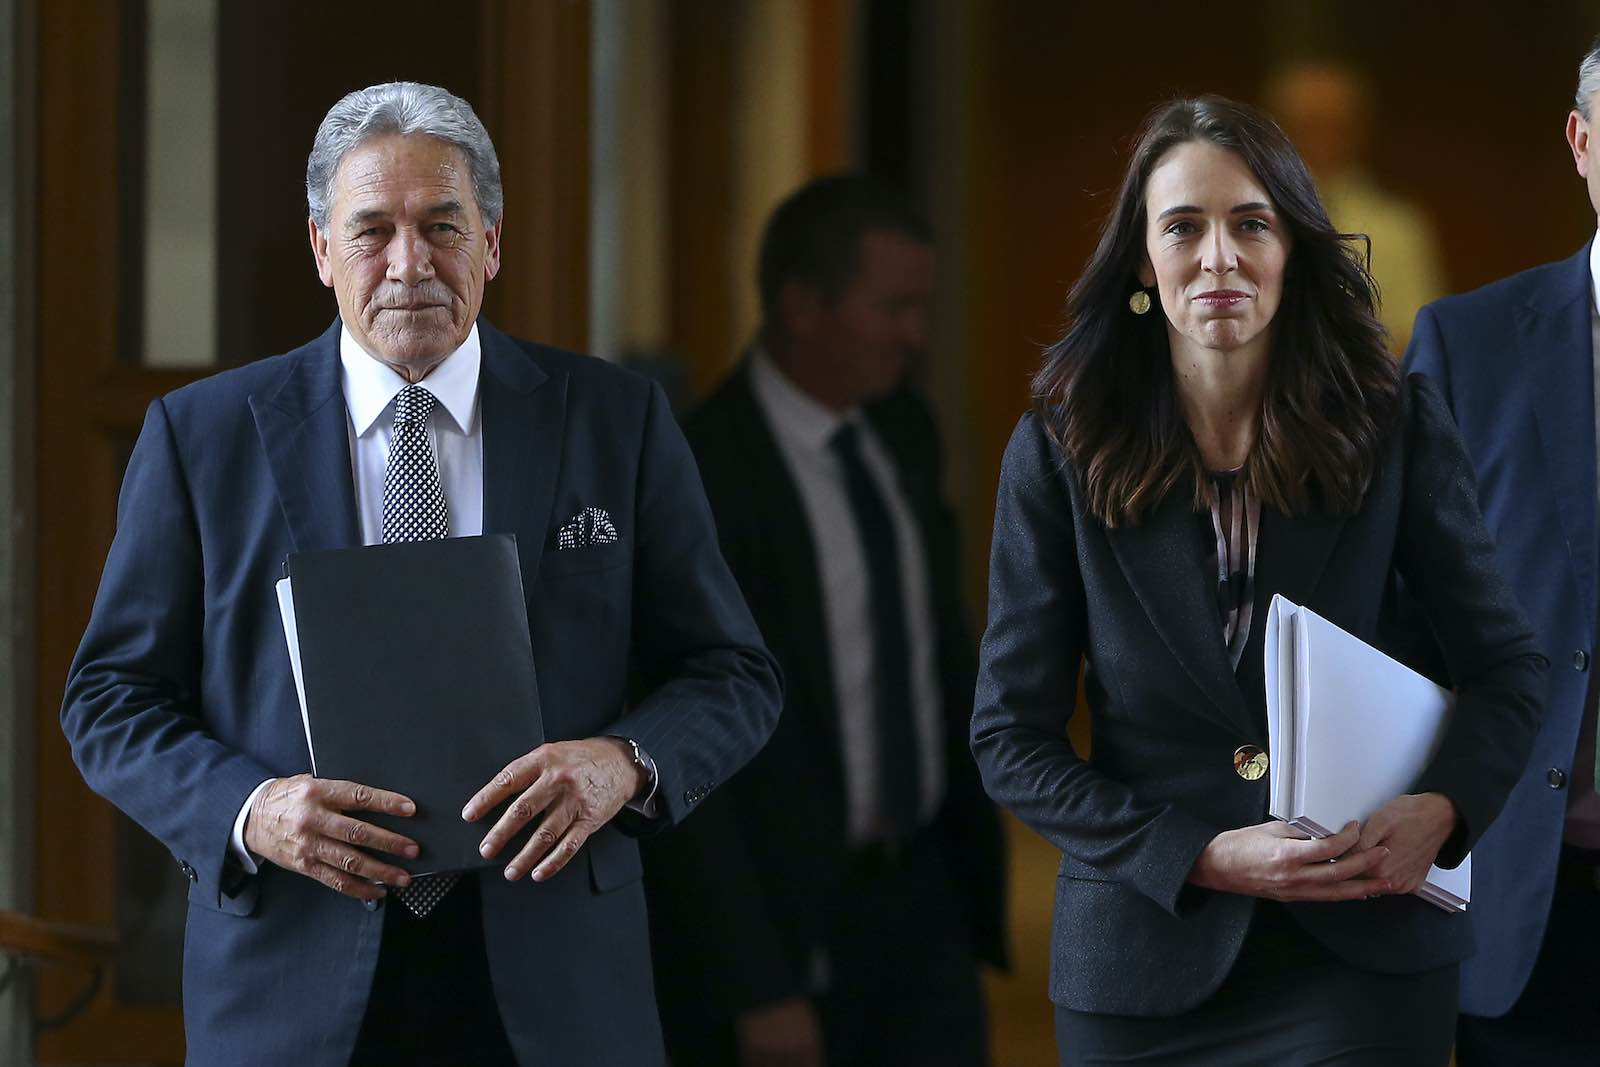 Foreign Minister Winston Peters and Prime Minister Jacinda Ardern before the New Zealand budget in May (Hagen Hopkins/Getty Images)